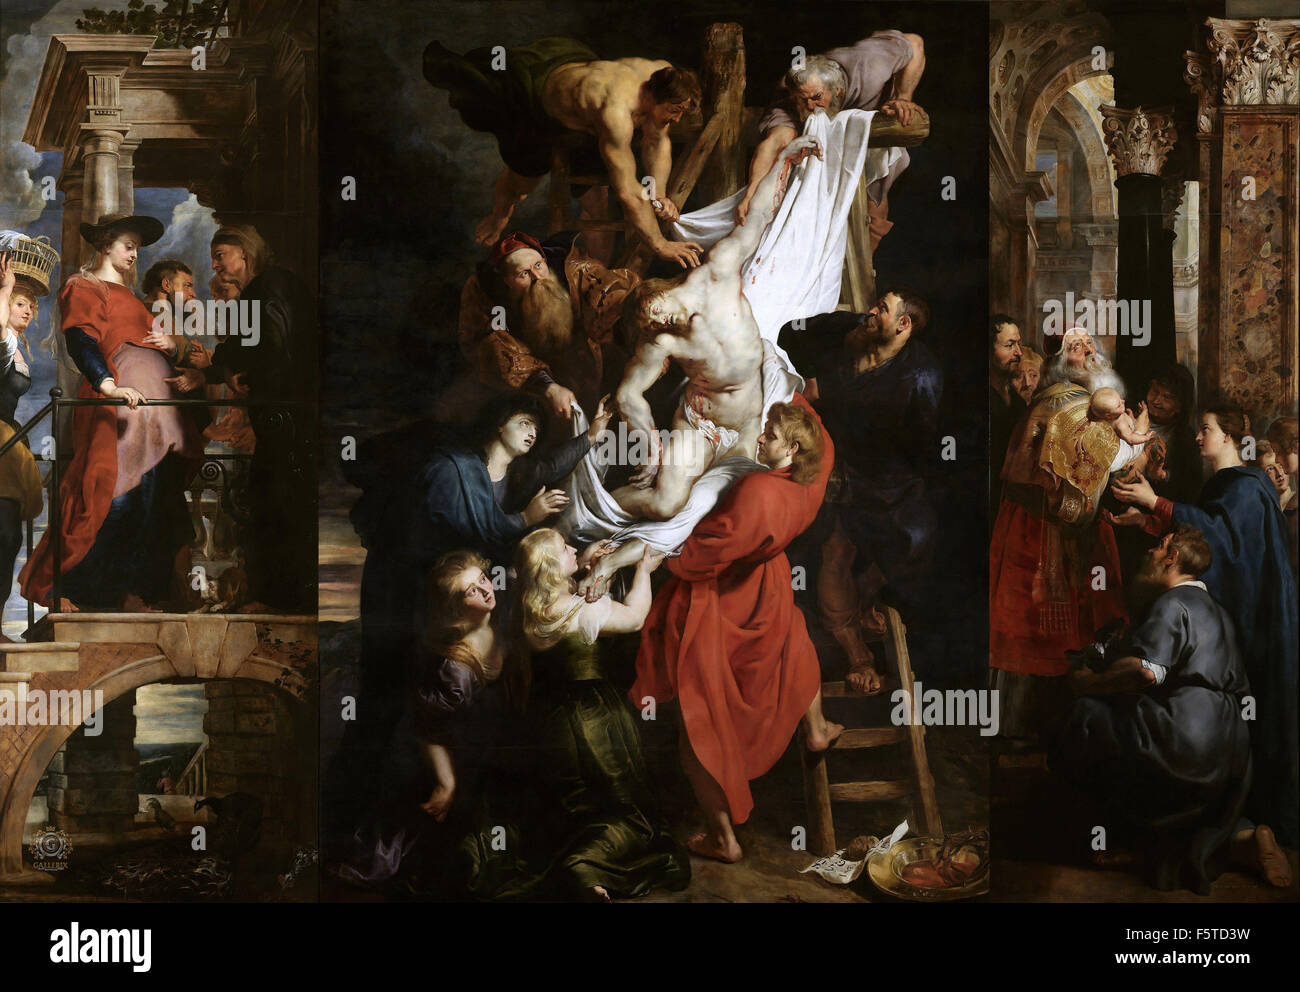 peter paul rubens the descent from the cross stock photo 89662269